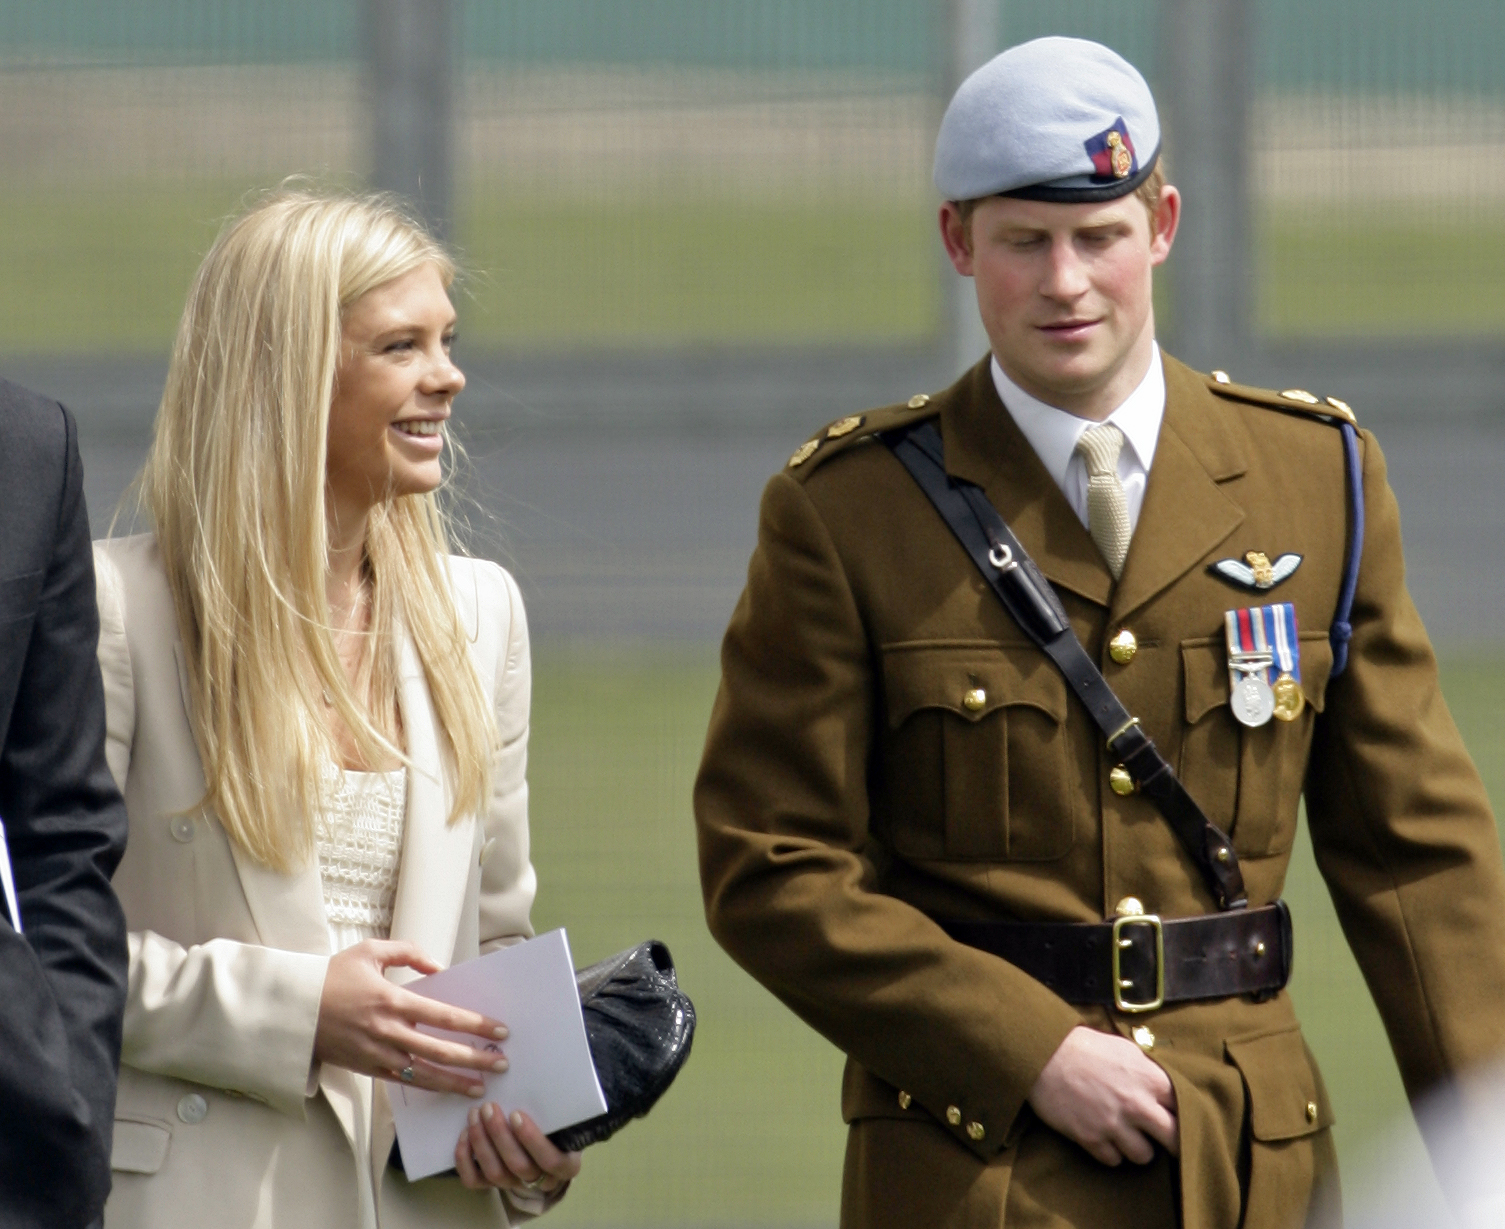 Prince Harry and Chelsy Davy dated for seven years after meeting as teenagers. Photo: Getty Images